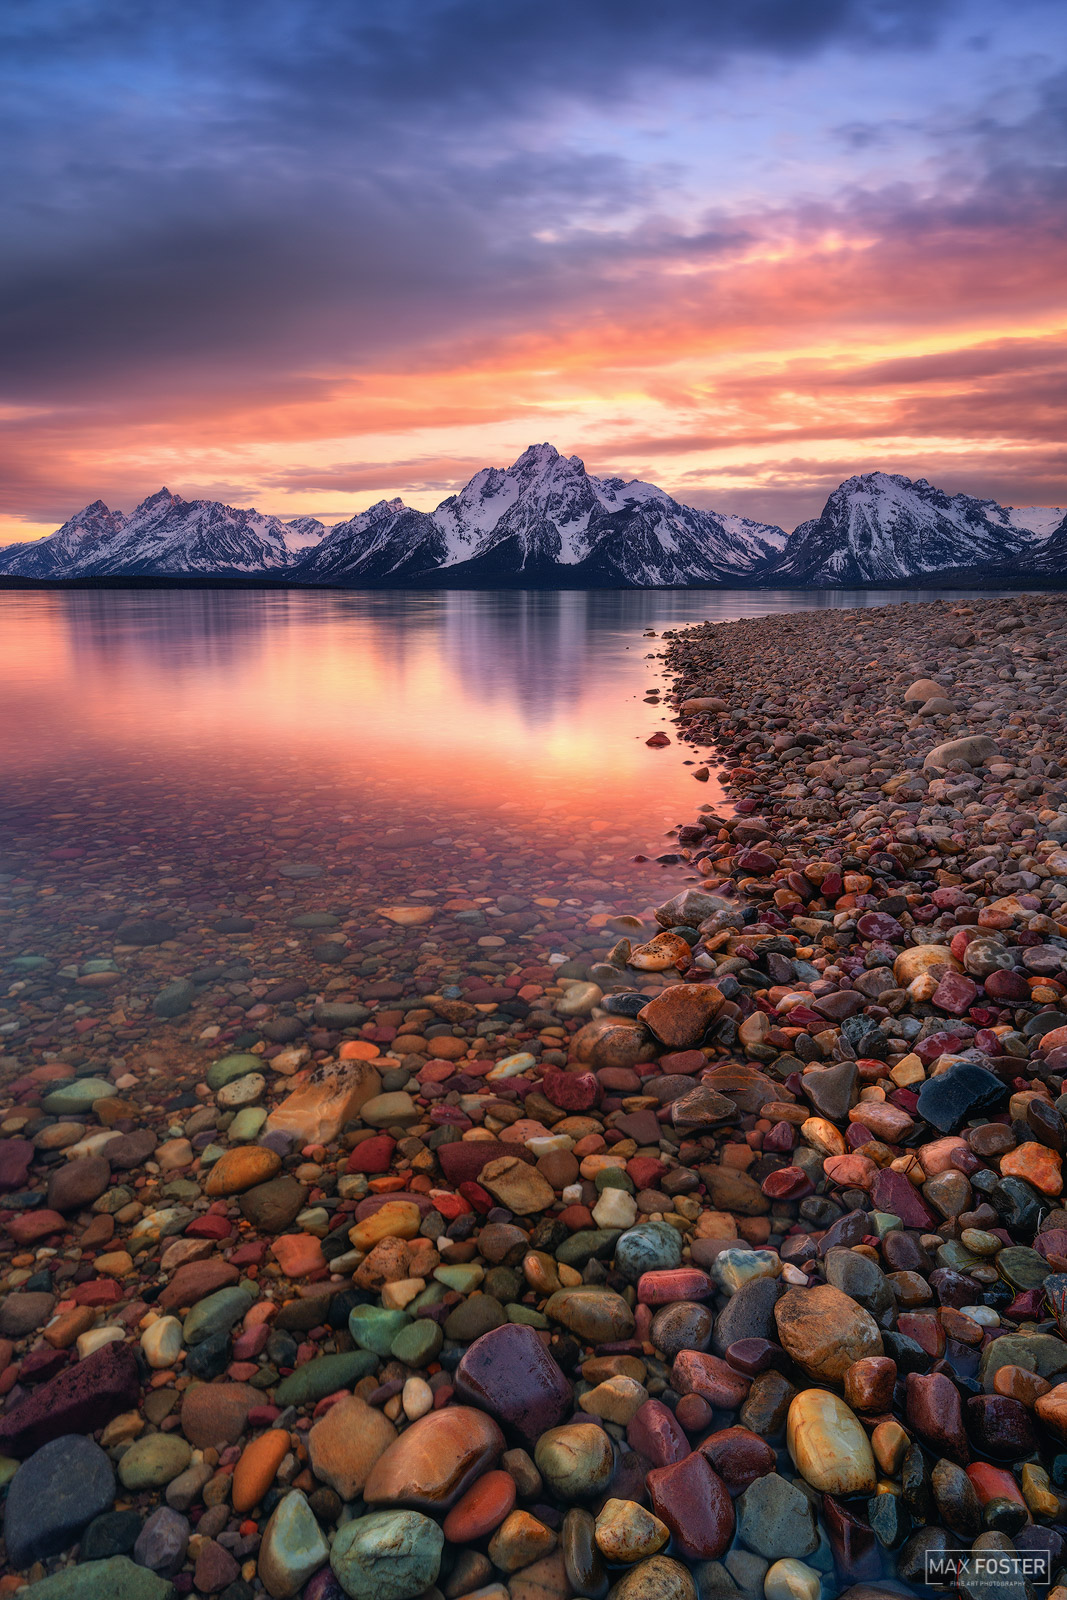 Grand Teton National Park, Wyoming,  Jackson Hole, Teton Treasures, Jackson Lake, Rainbow Rocks, Colored Rocks, Pebbles, photo